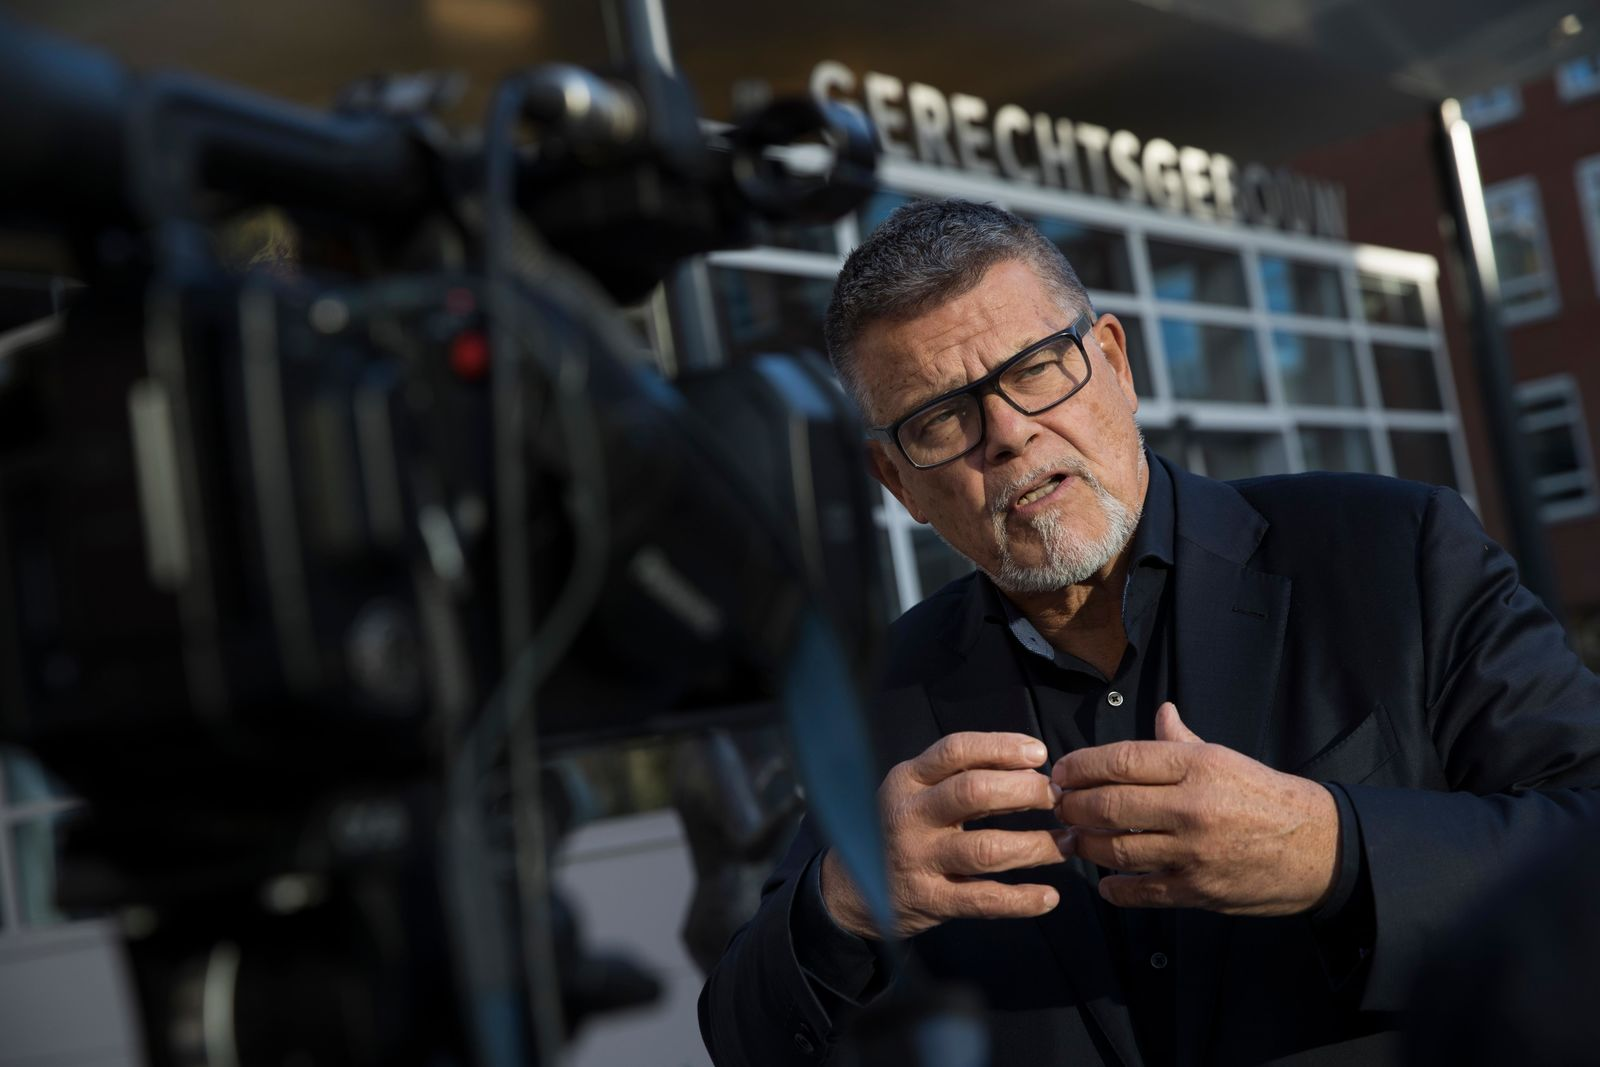 Self-styled Dutch positivity guru Emile Ratelband answers questions during an interview in Utrecht, Netherlands. (AP Photo/Peter Dejong)